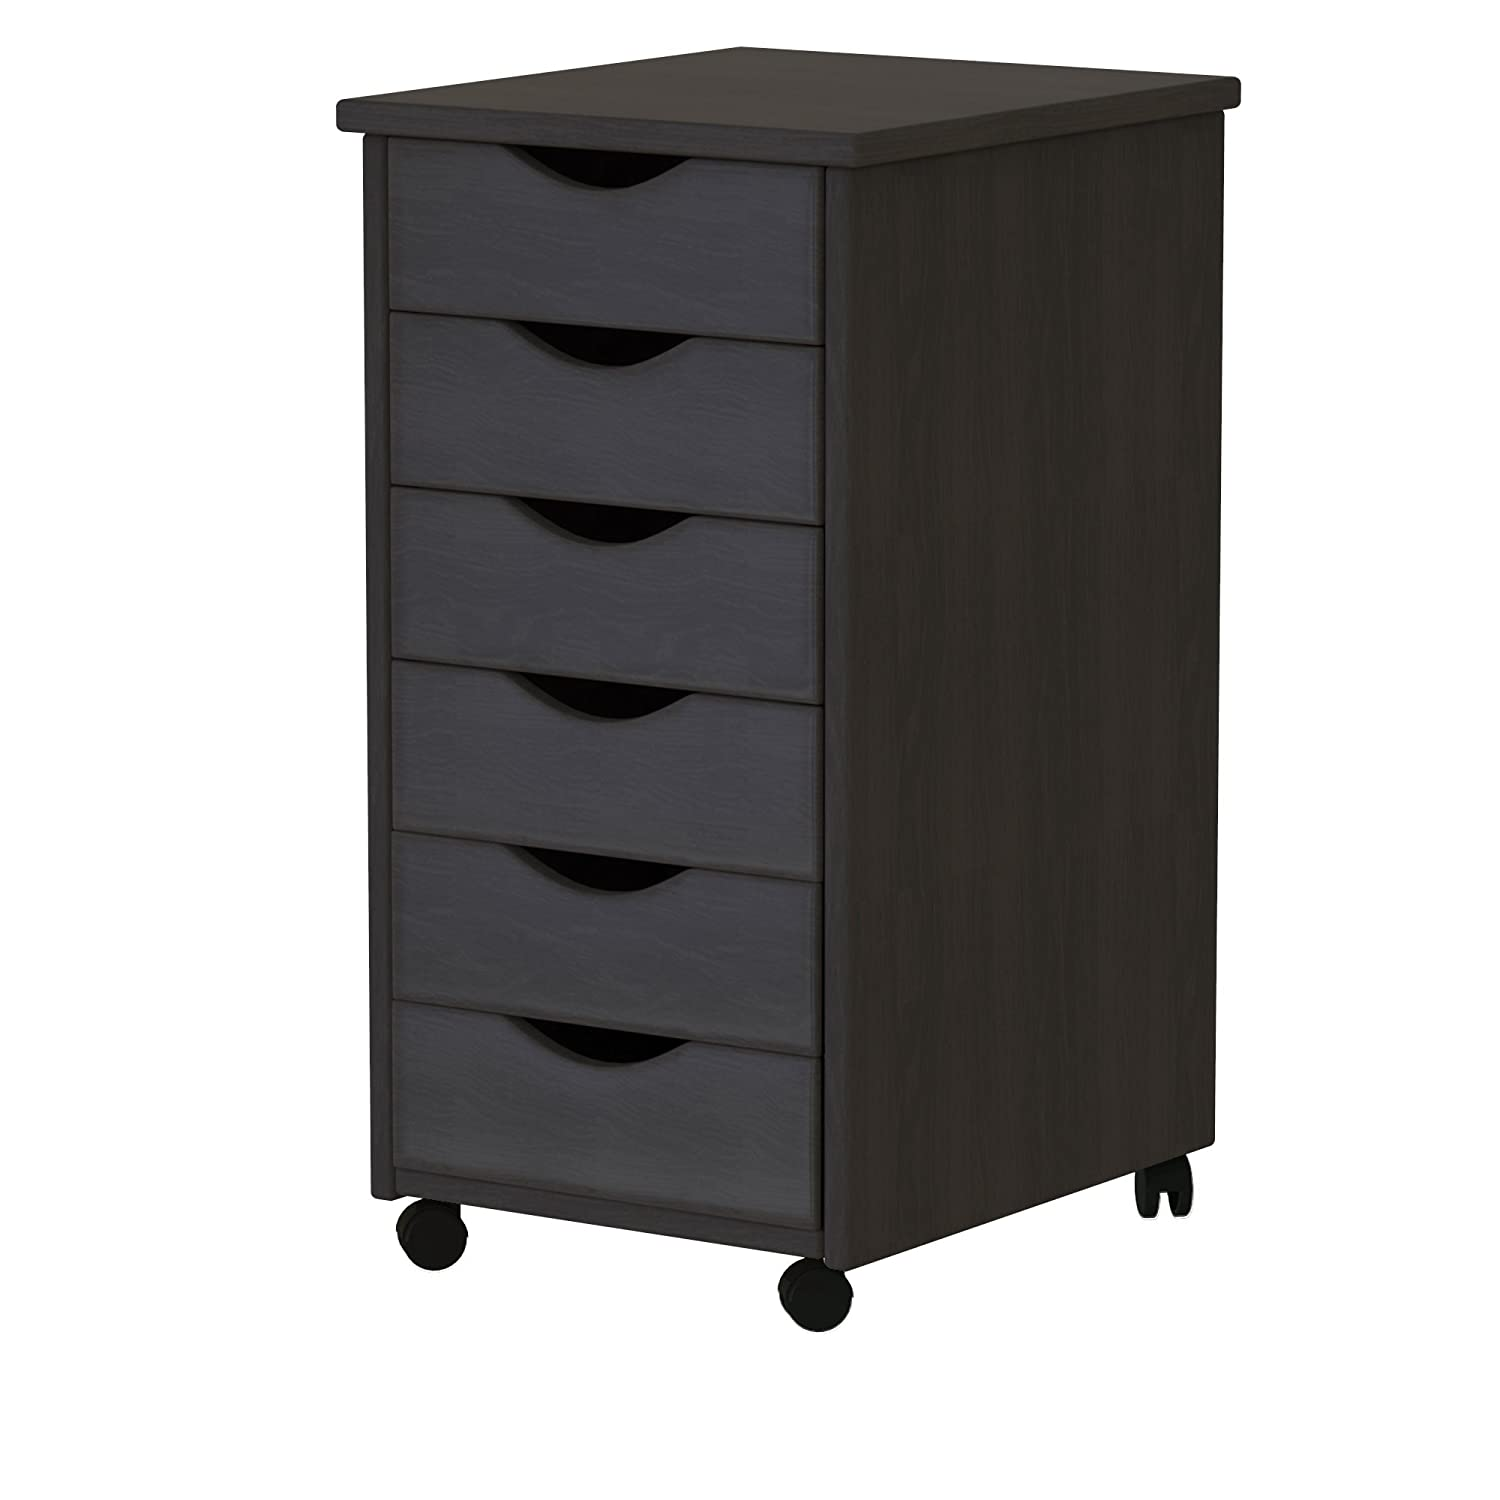 ADEPTUS 100166 Drawer Roll Cart, Black